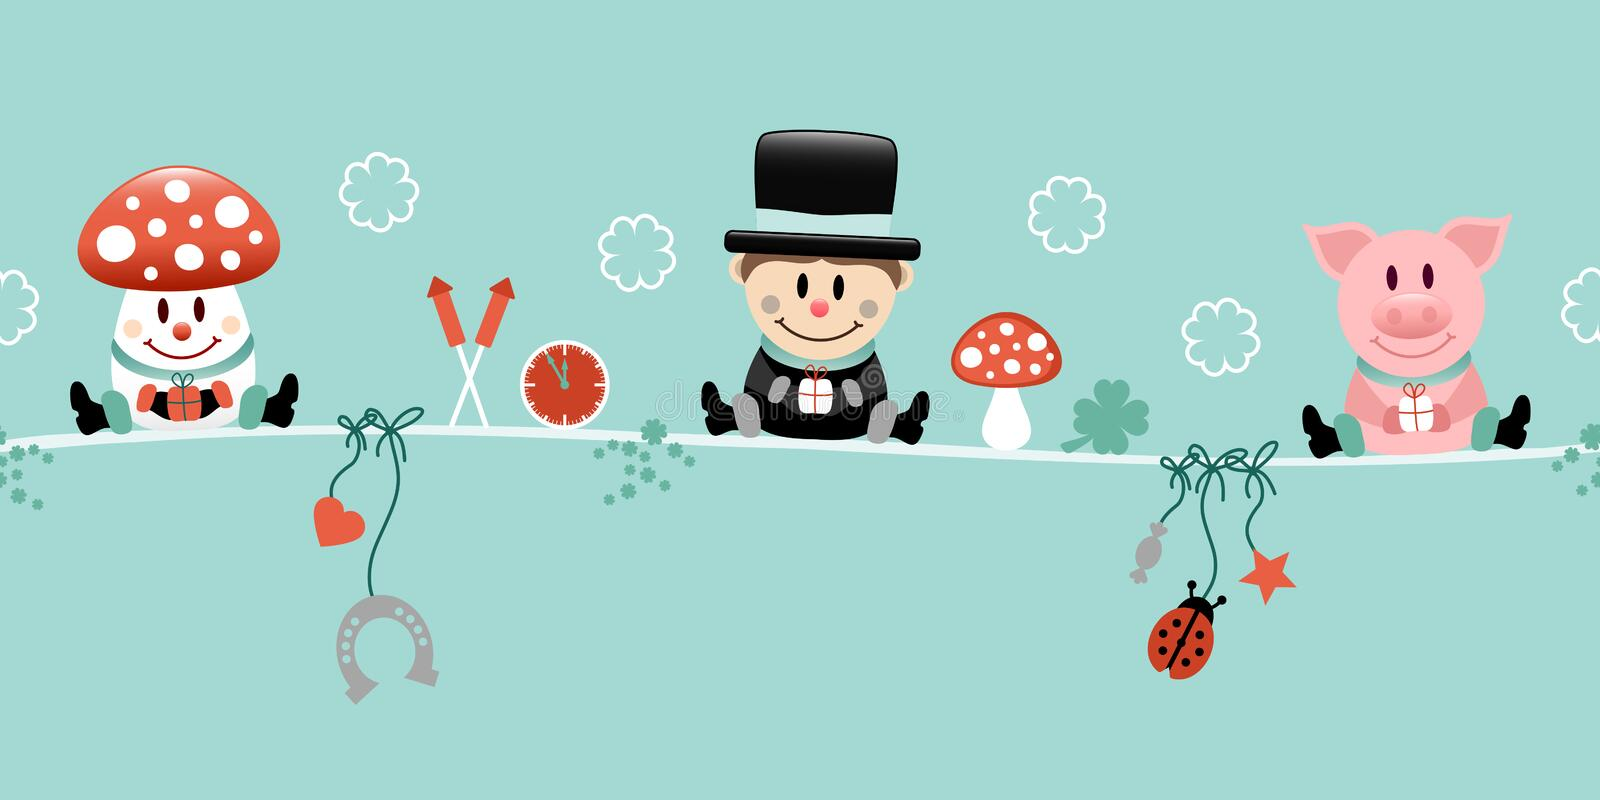 Fly Agaric Chimney Sweep And Pig Icons New Years Eve Turquoise. Cute Fly Agaric Chimney Sweep And Pig Icons New Years Eve Turquoise royalty free illustration